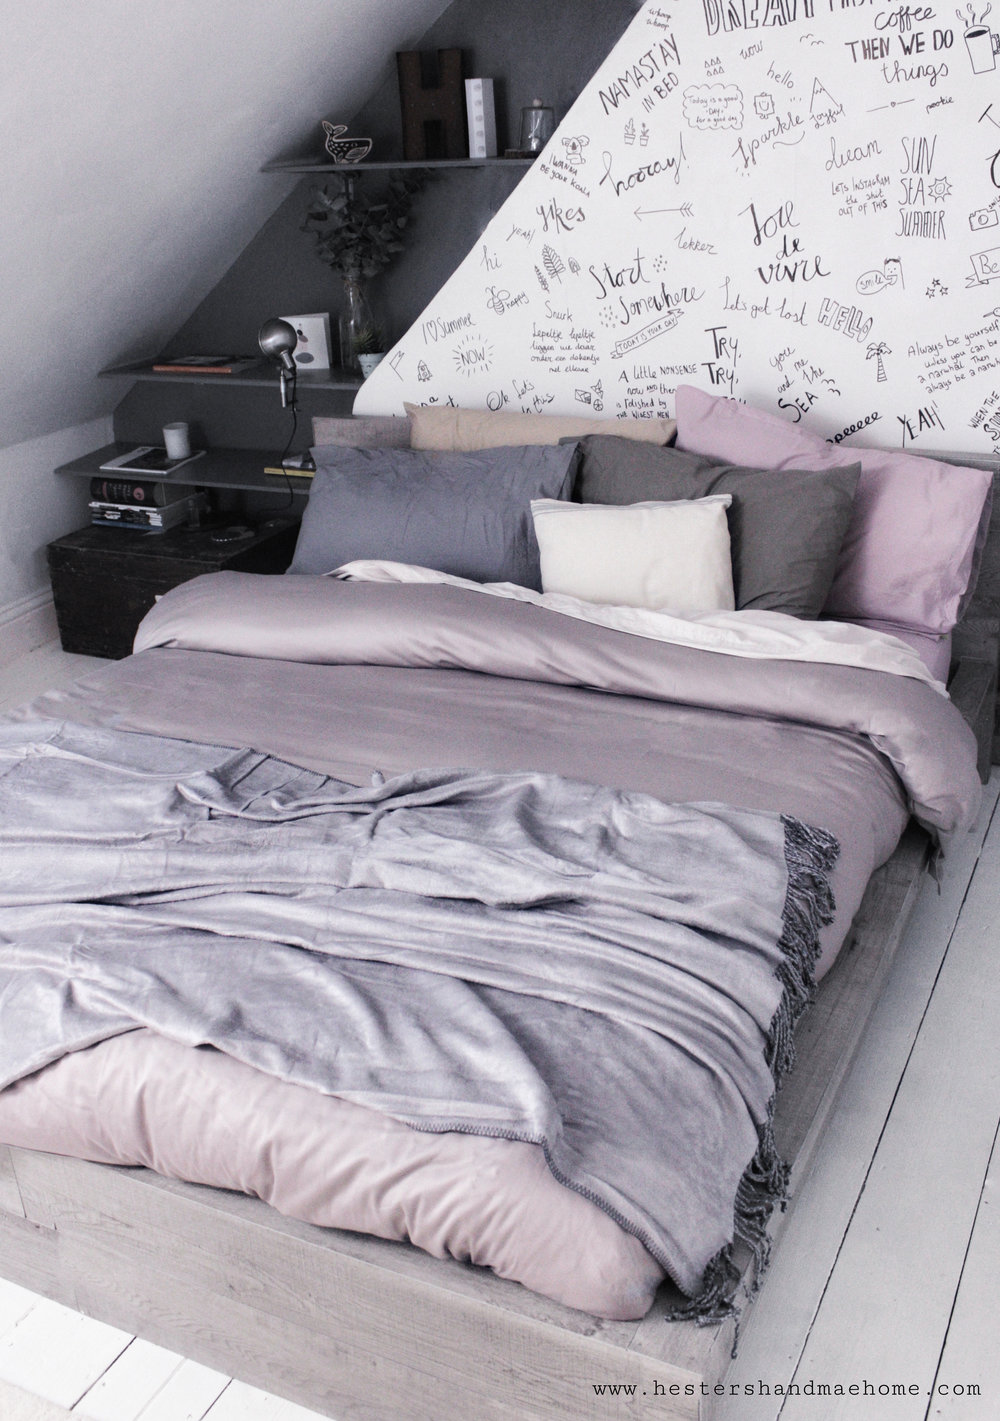 hygge your bed by www.hestershandmadehome.com